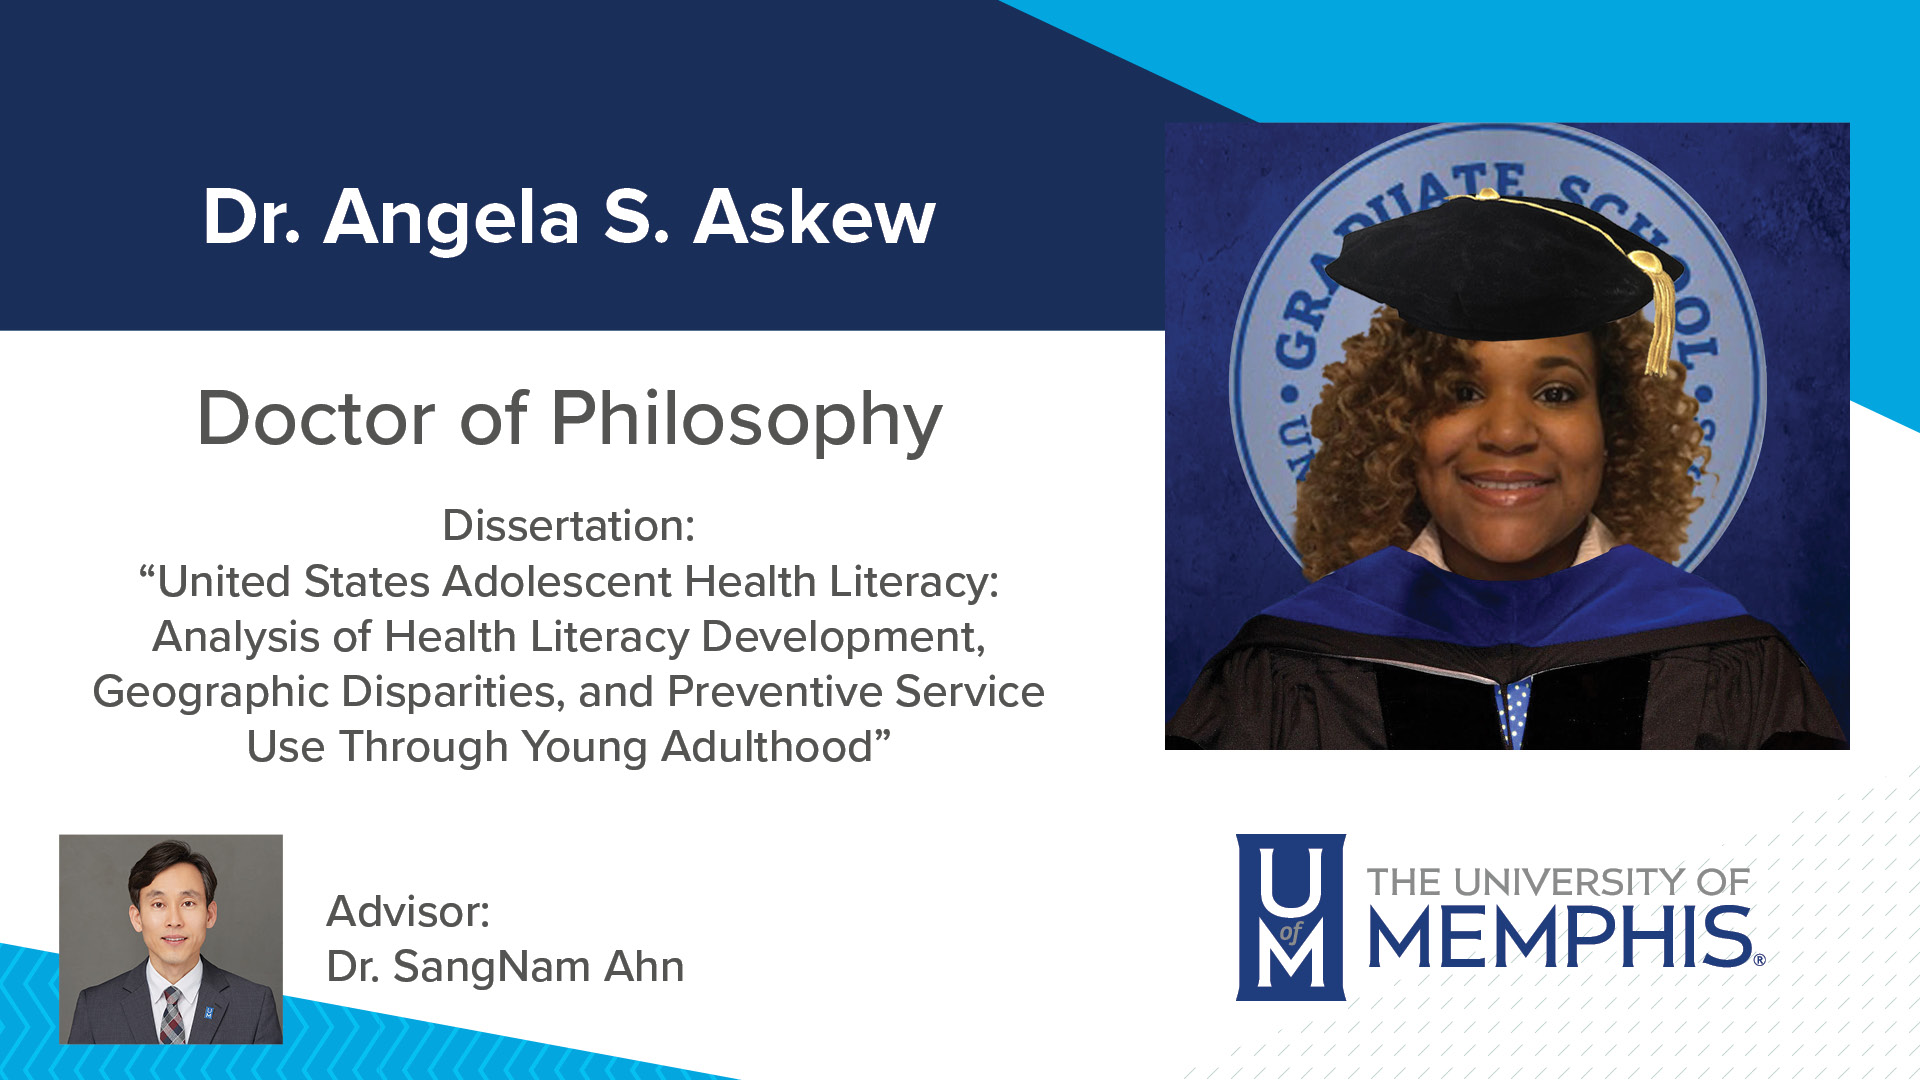 """Dr. Angela S. Askew Dissertation: """"United States Adolescent Health Literacy: Analysis of Health Literacy Development, Geographic Disparities, and Preventive Service Use Through Young Adulthood"""" Major Professor: Dr. SangNam Ahn"""